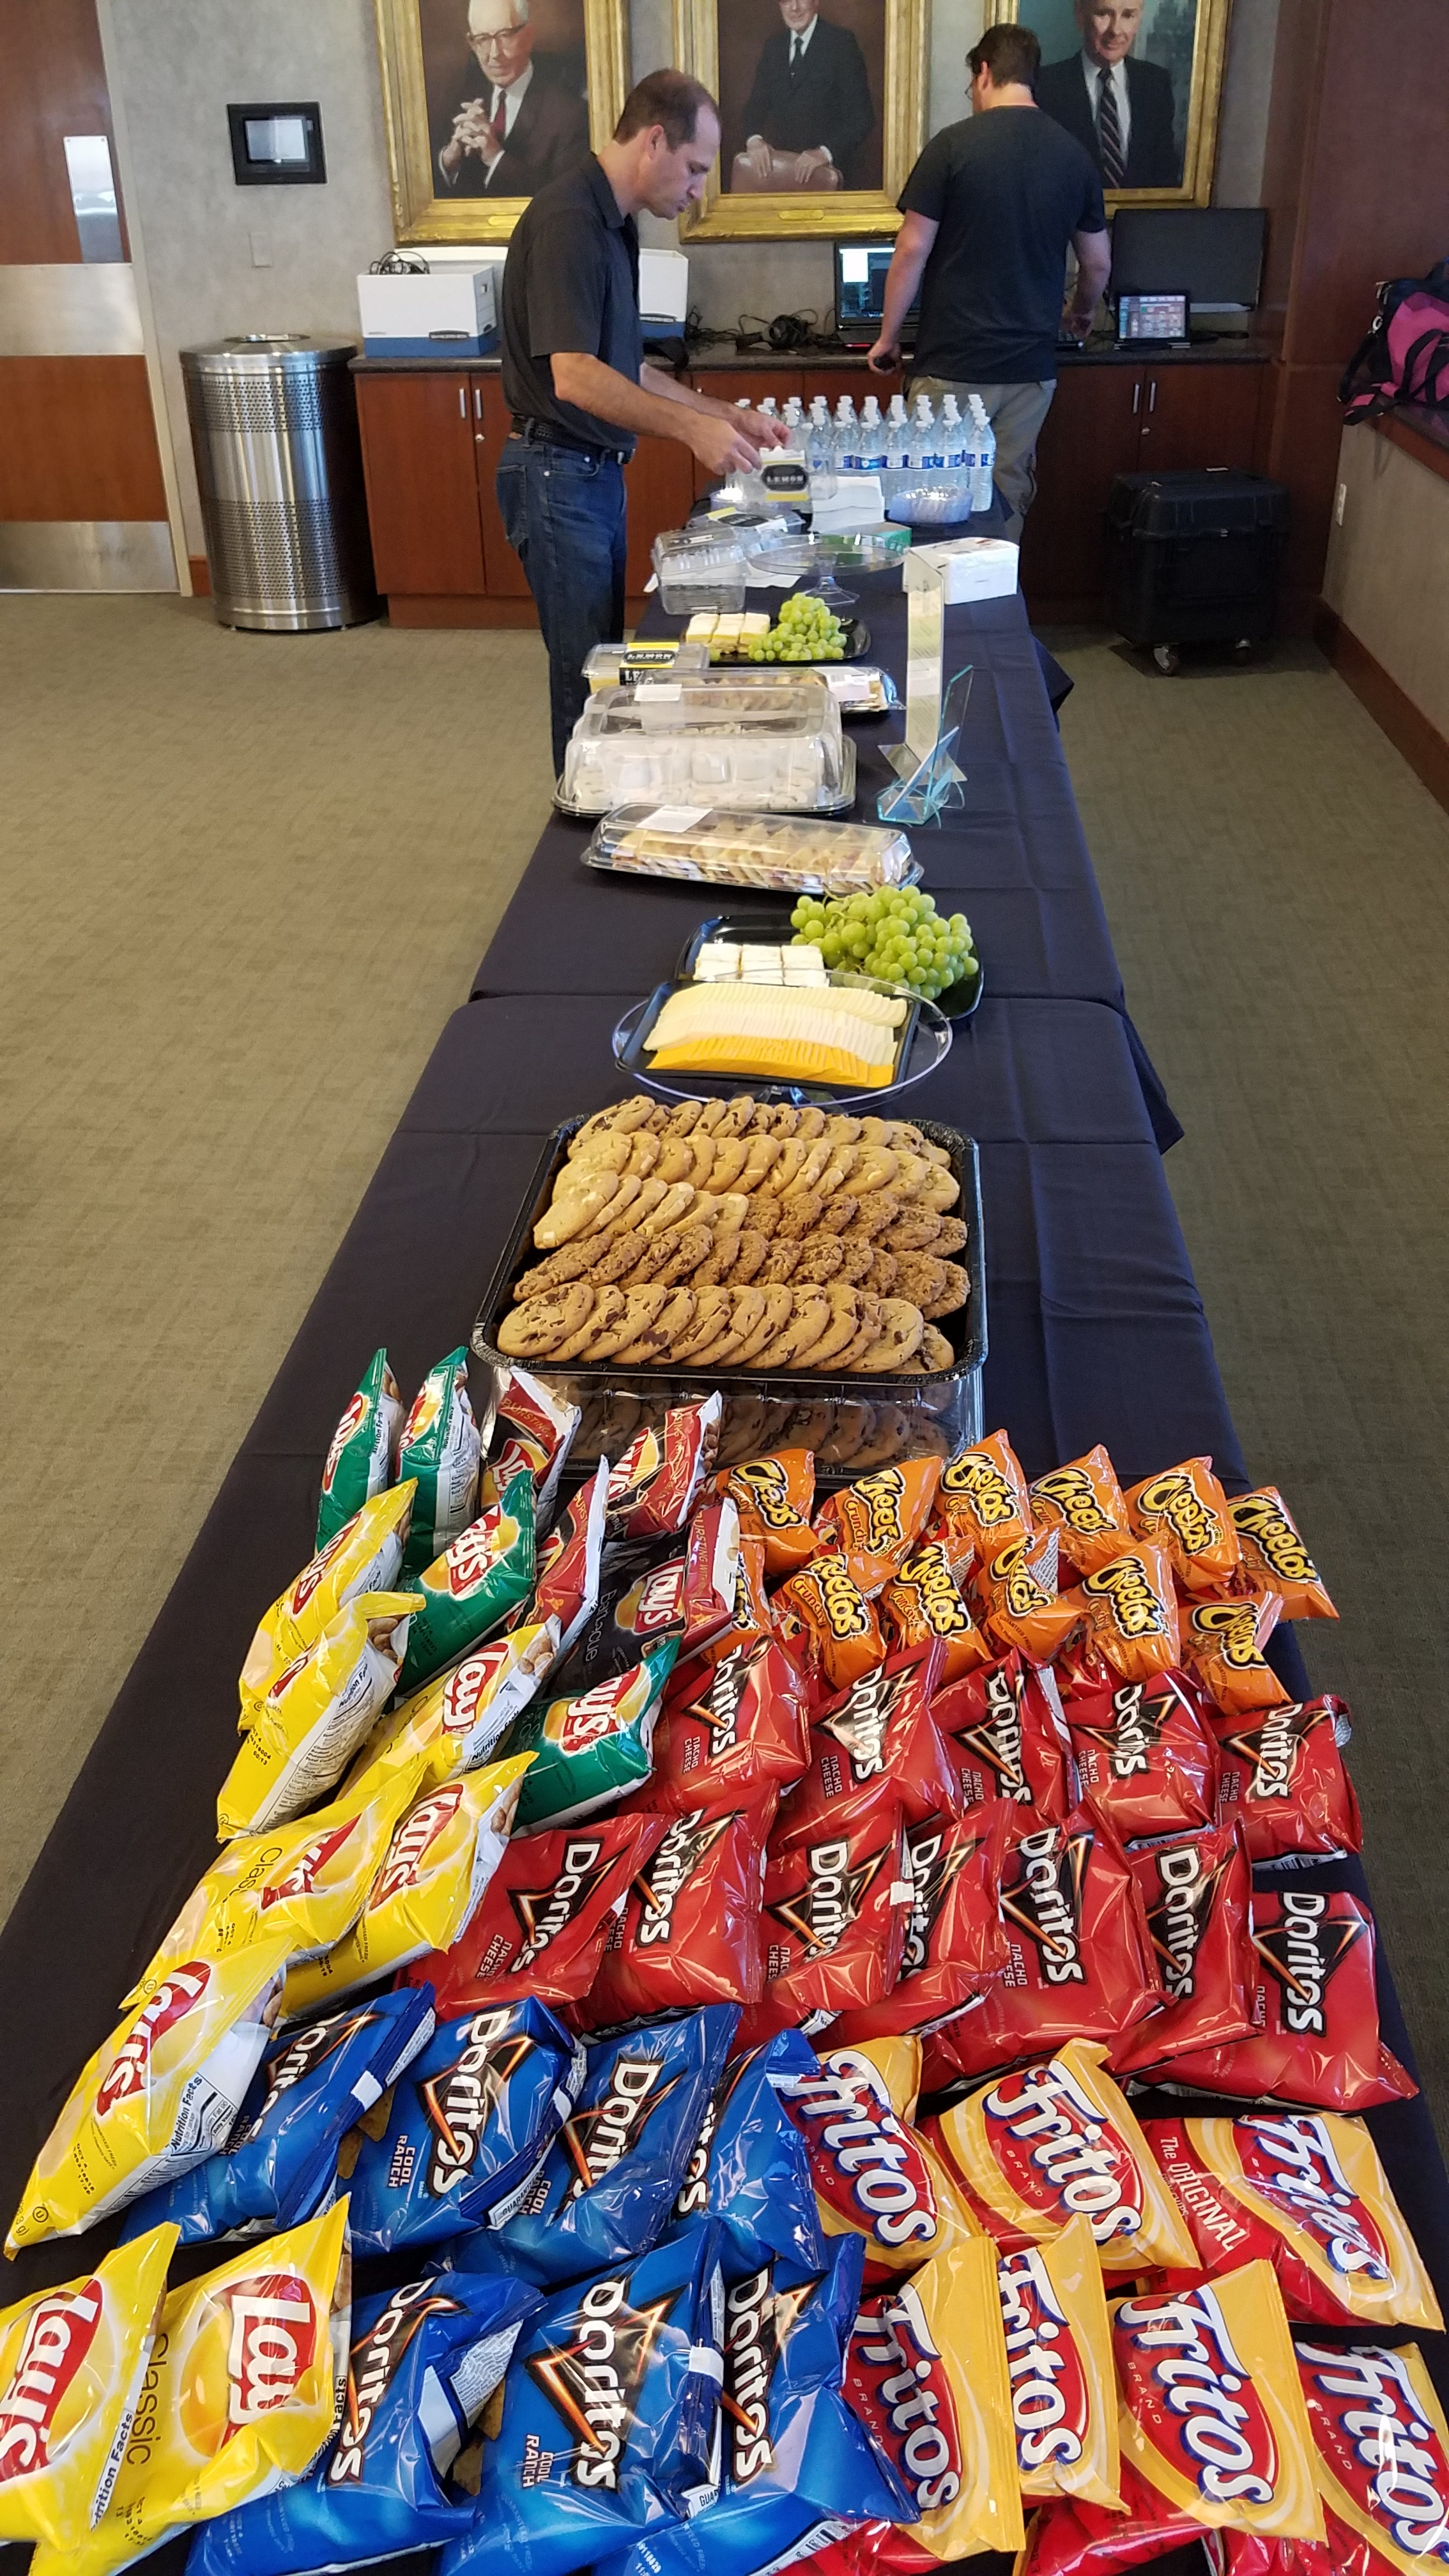 Jeff Peters sets out the snacks